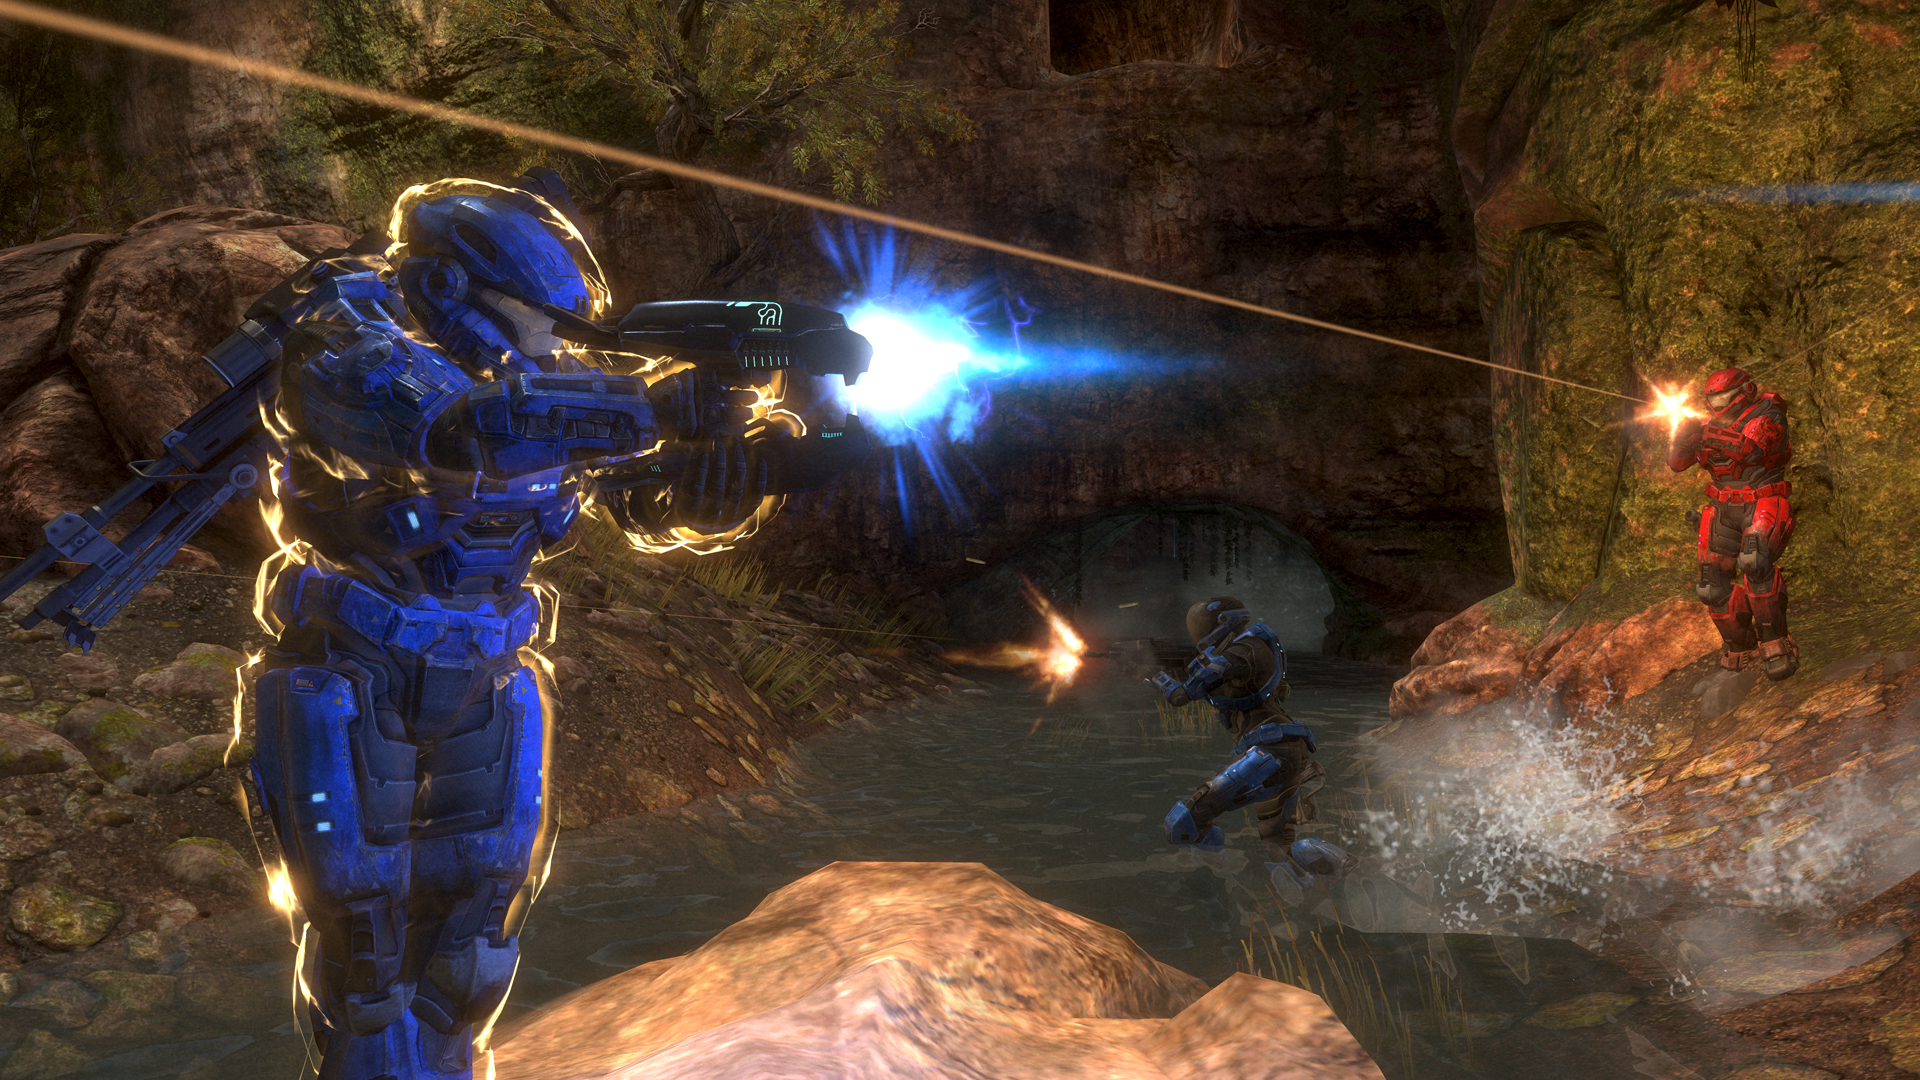 halo reach matchmaking playlist data pending download